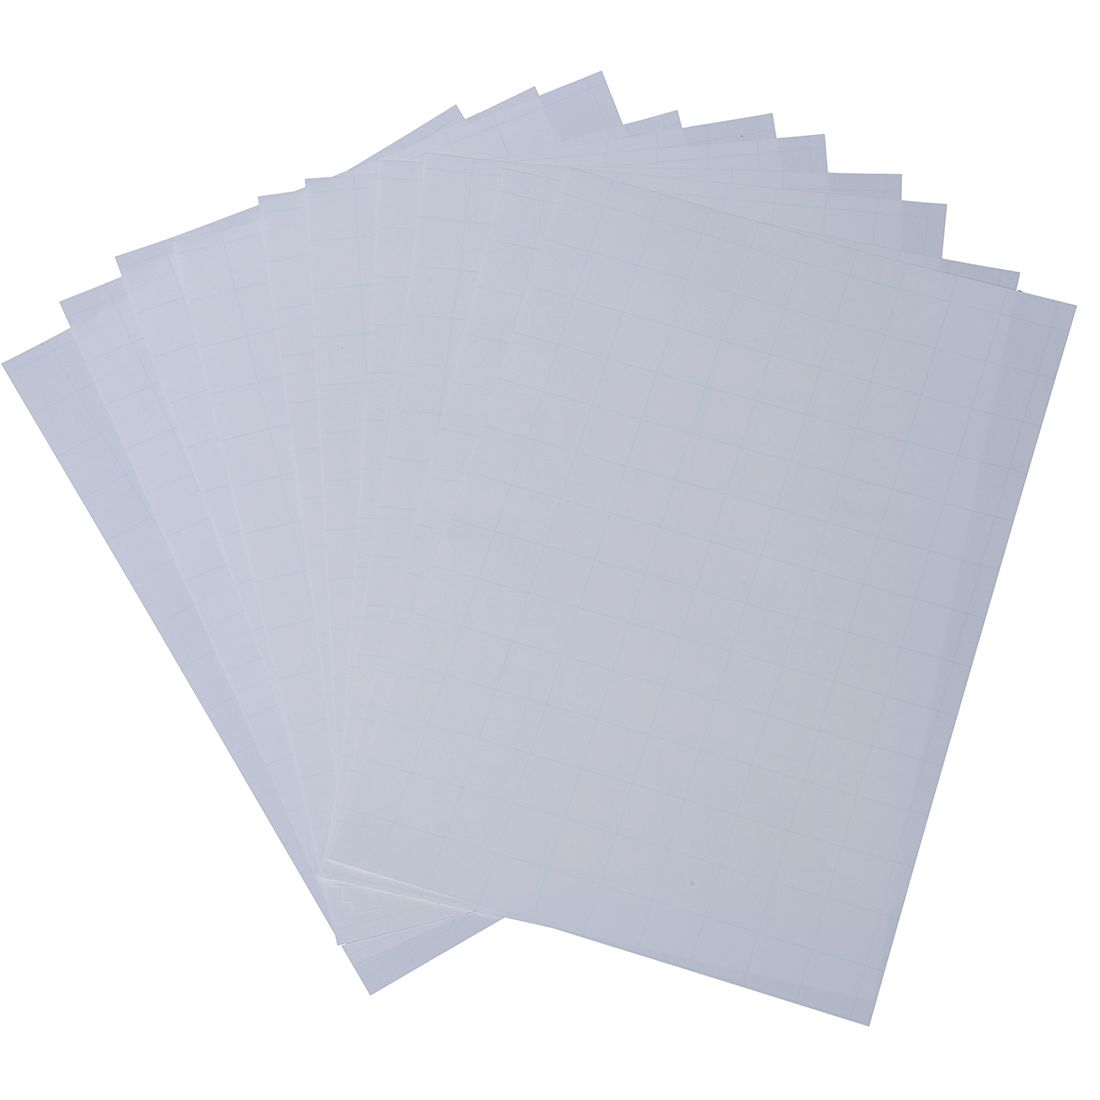 цены NEW 10 Sheets A4 Inkjet Transfer Paper Transfer Paper for T-Shirt